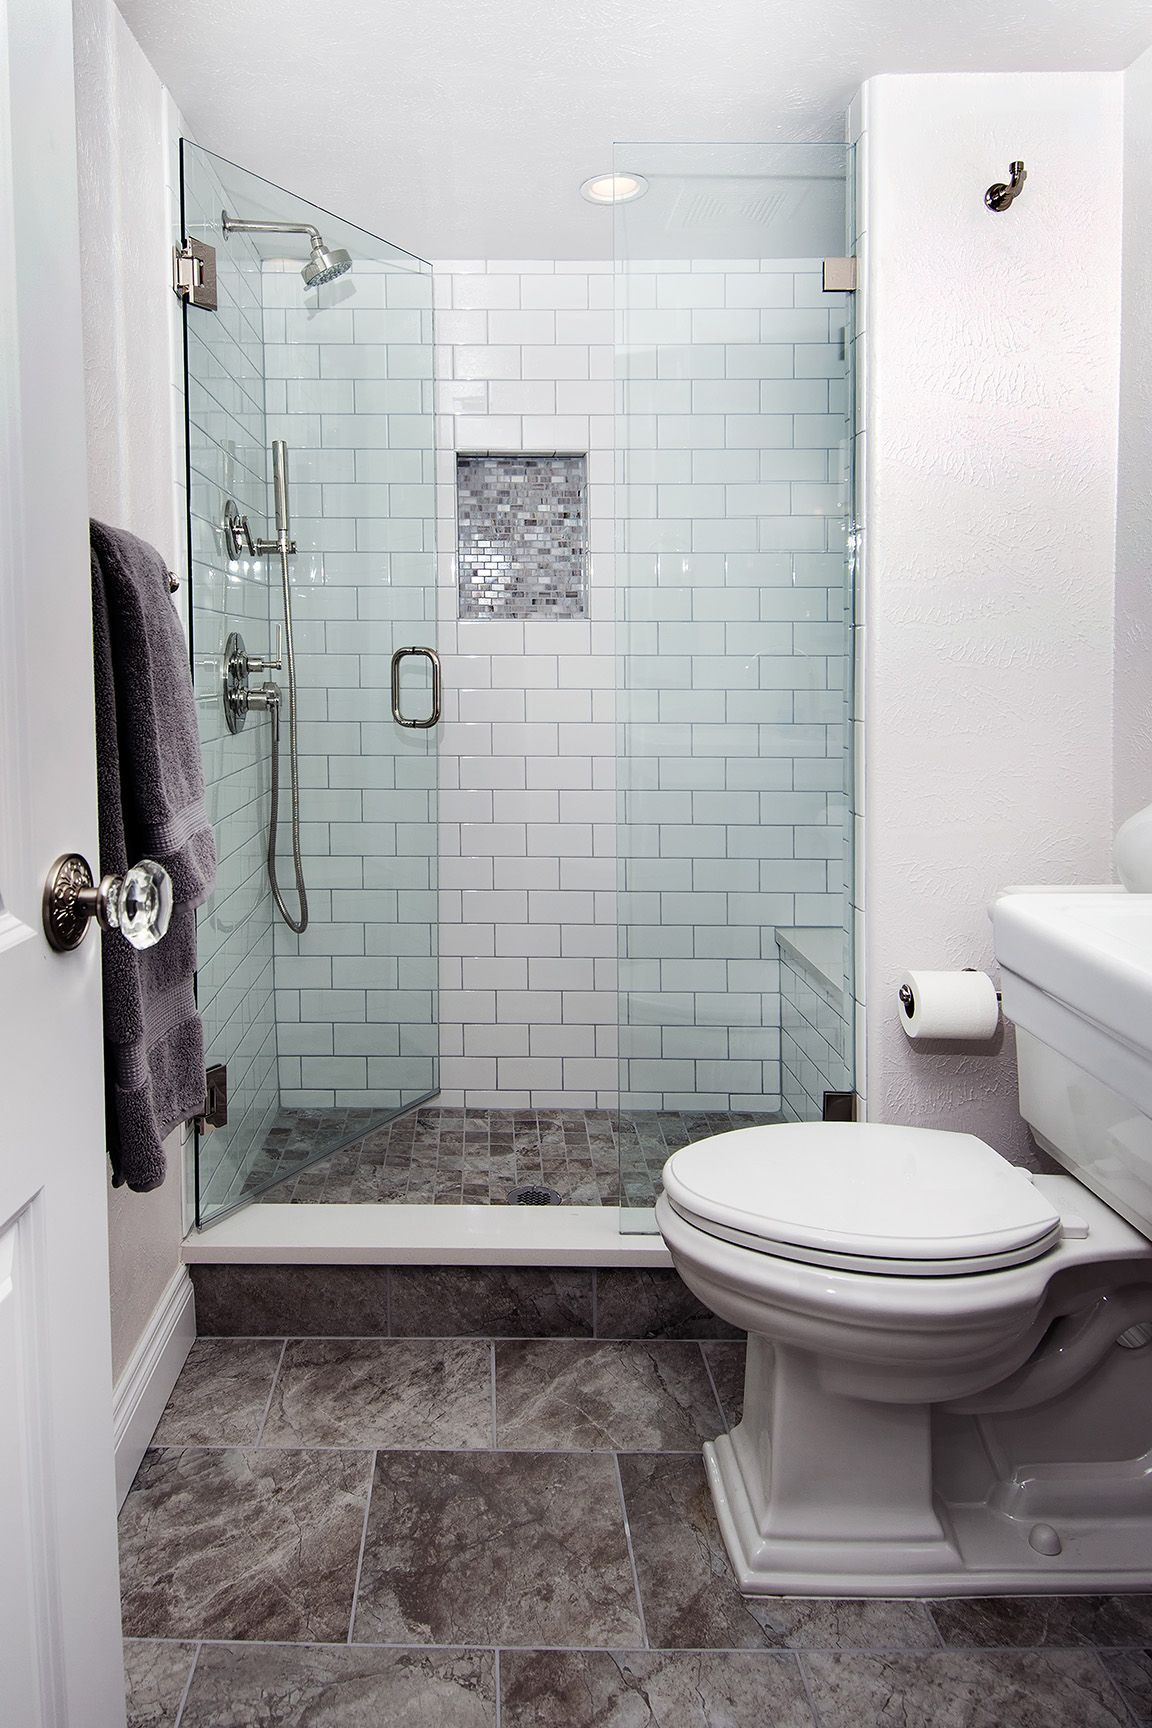 White subway tile shower walls with tiled mosaic niche, handheld ...